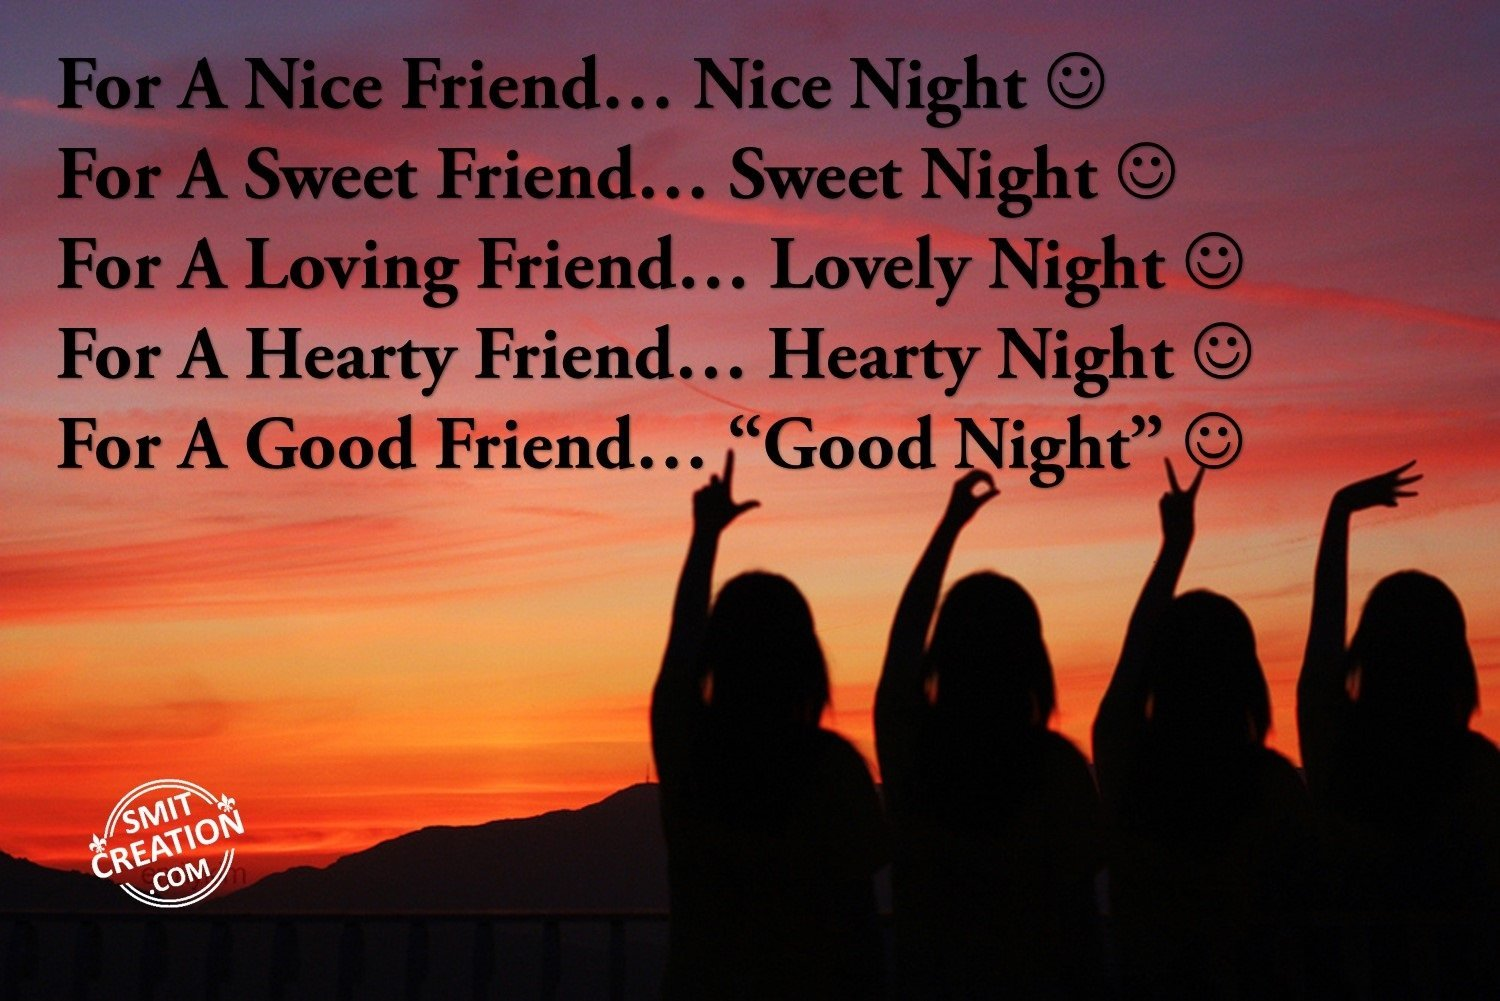 Good Night Friends Pictures And Graphics Smitcreationcom Page 9